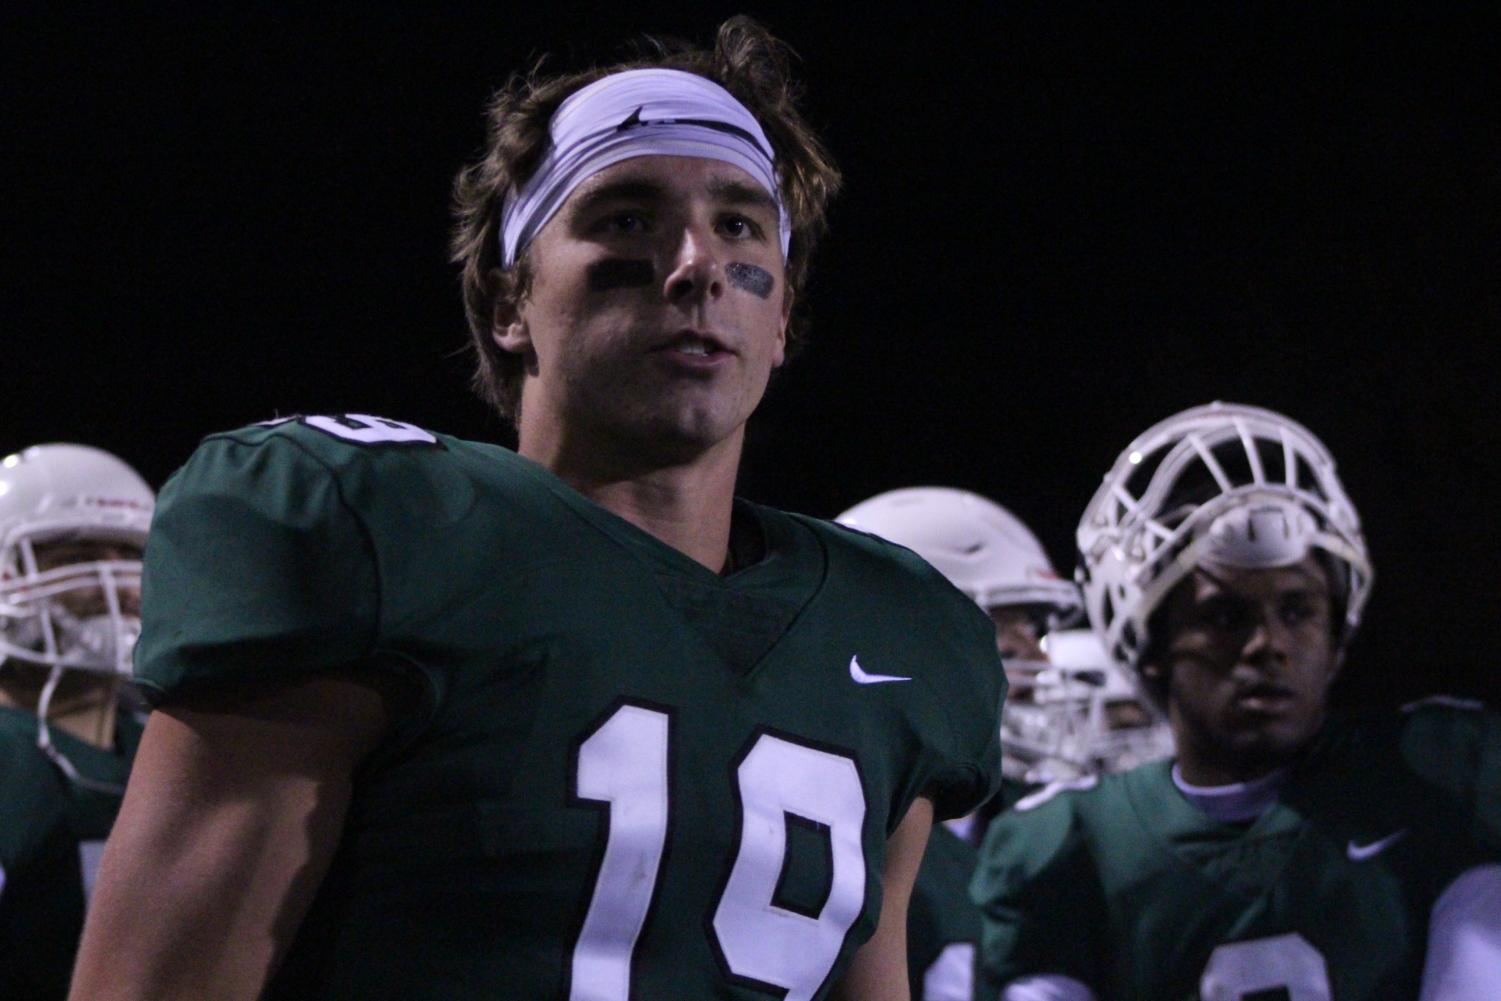 Jacob Carsack watches the game